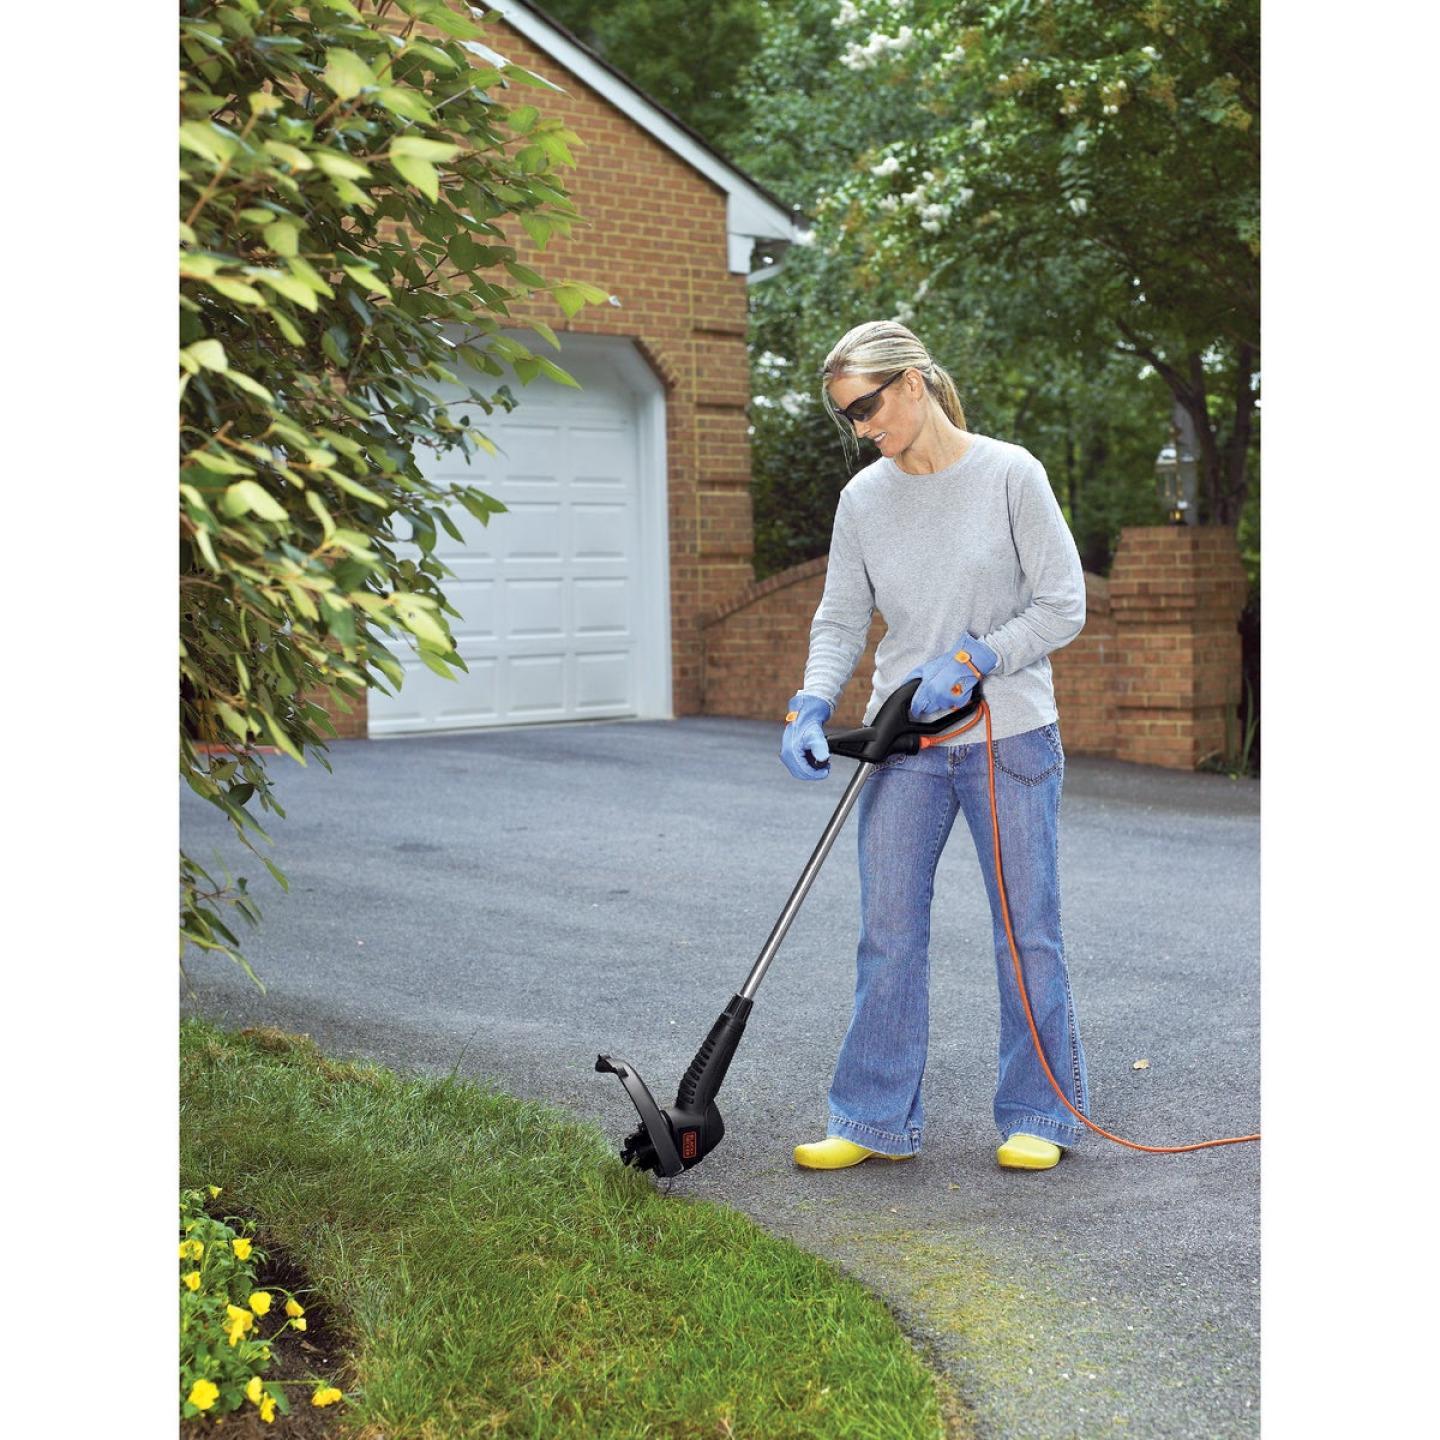 Black & Decker 12 In. 3.5-Amp Corded Electric String Trimmer Edger Image 4